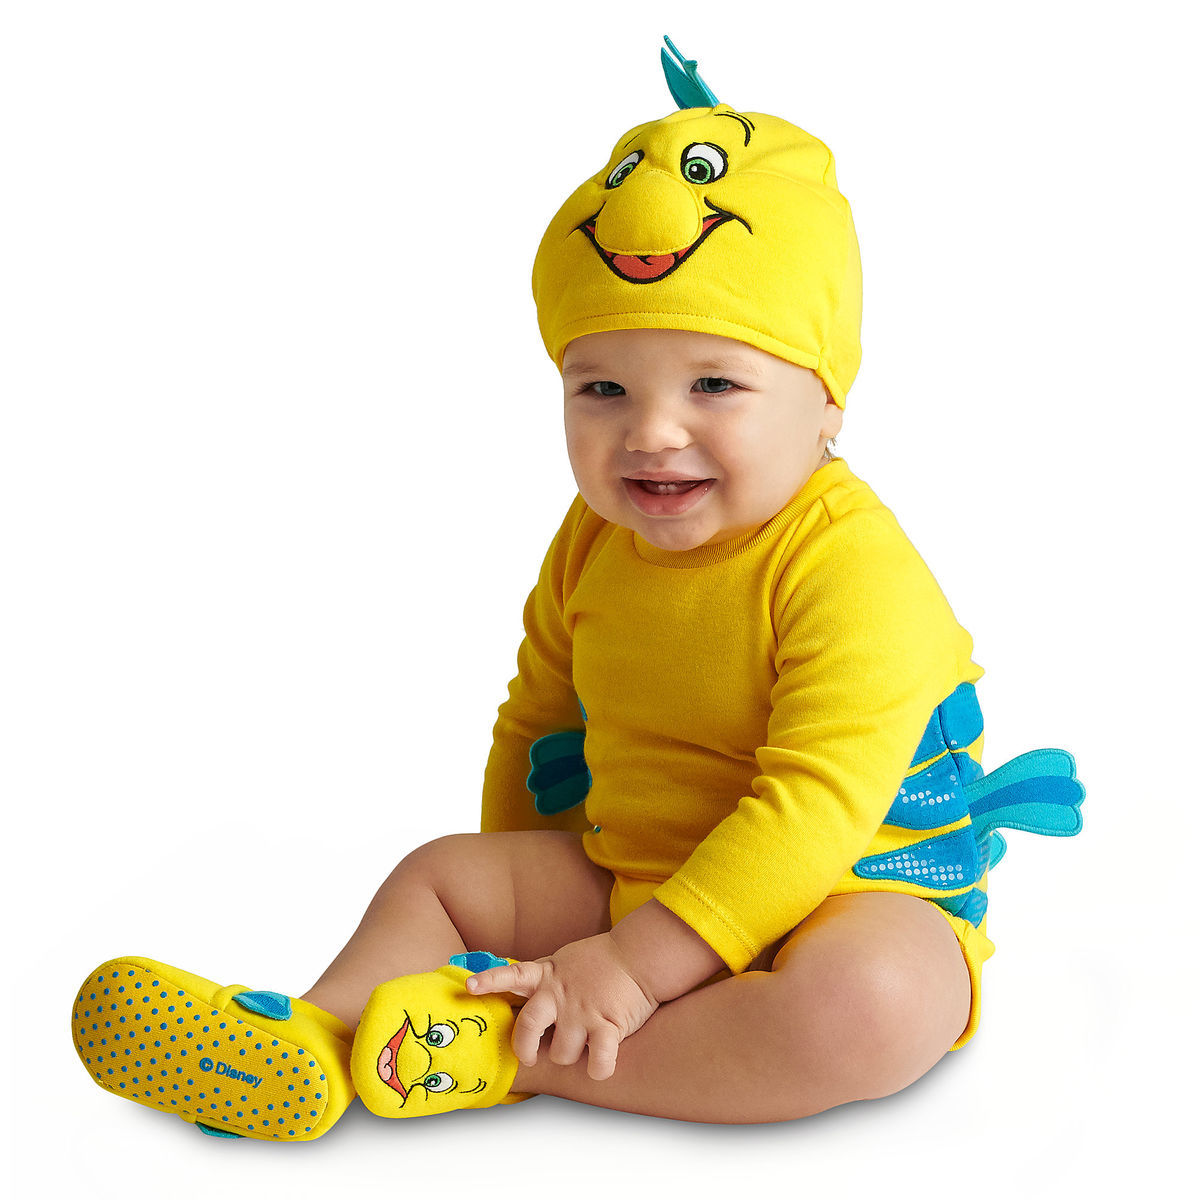 Flounder Costume Bodysuit Collection For Baby The Little Mermaid